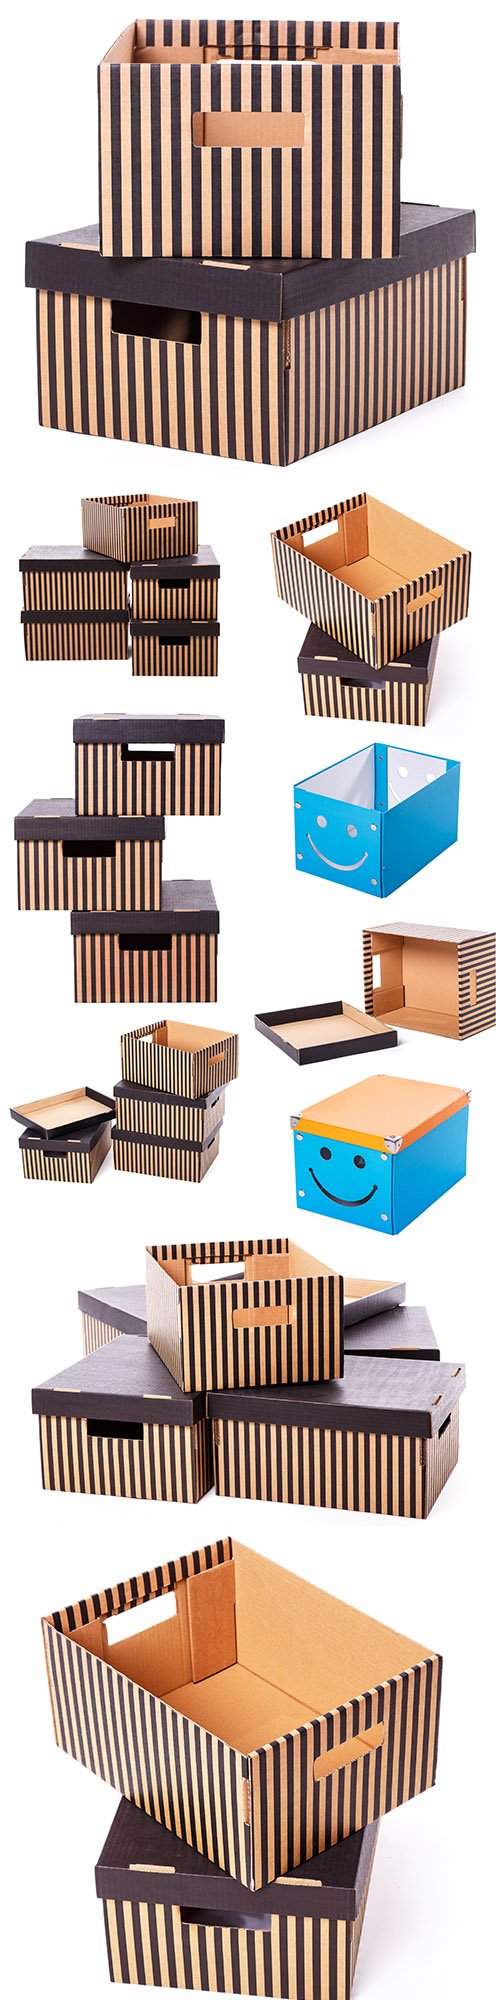 Boxes for storing and delivering items to office